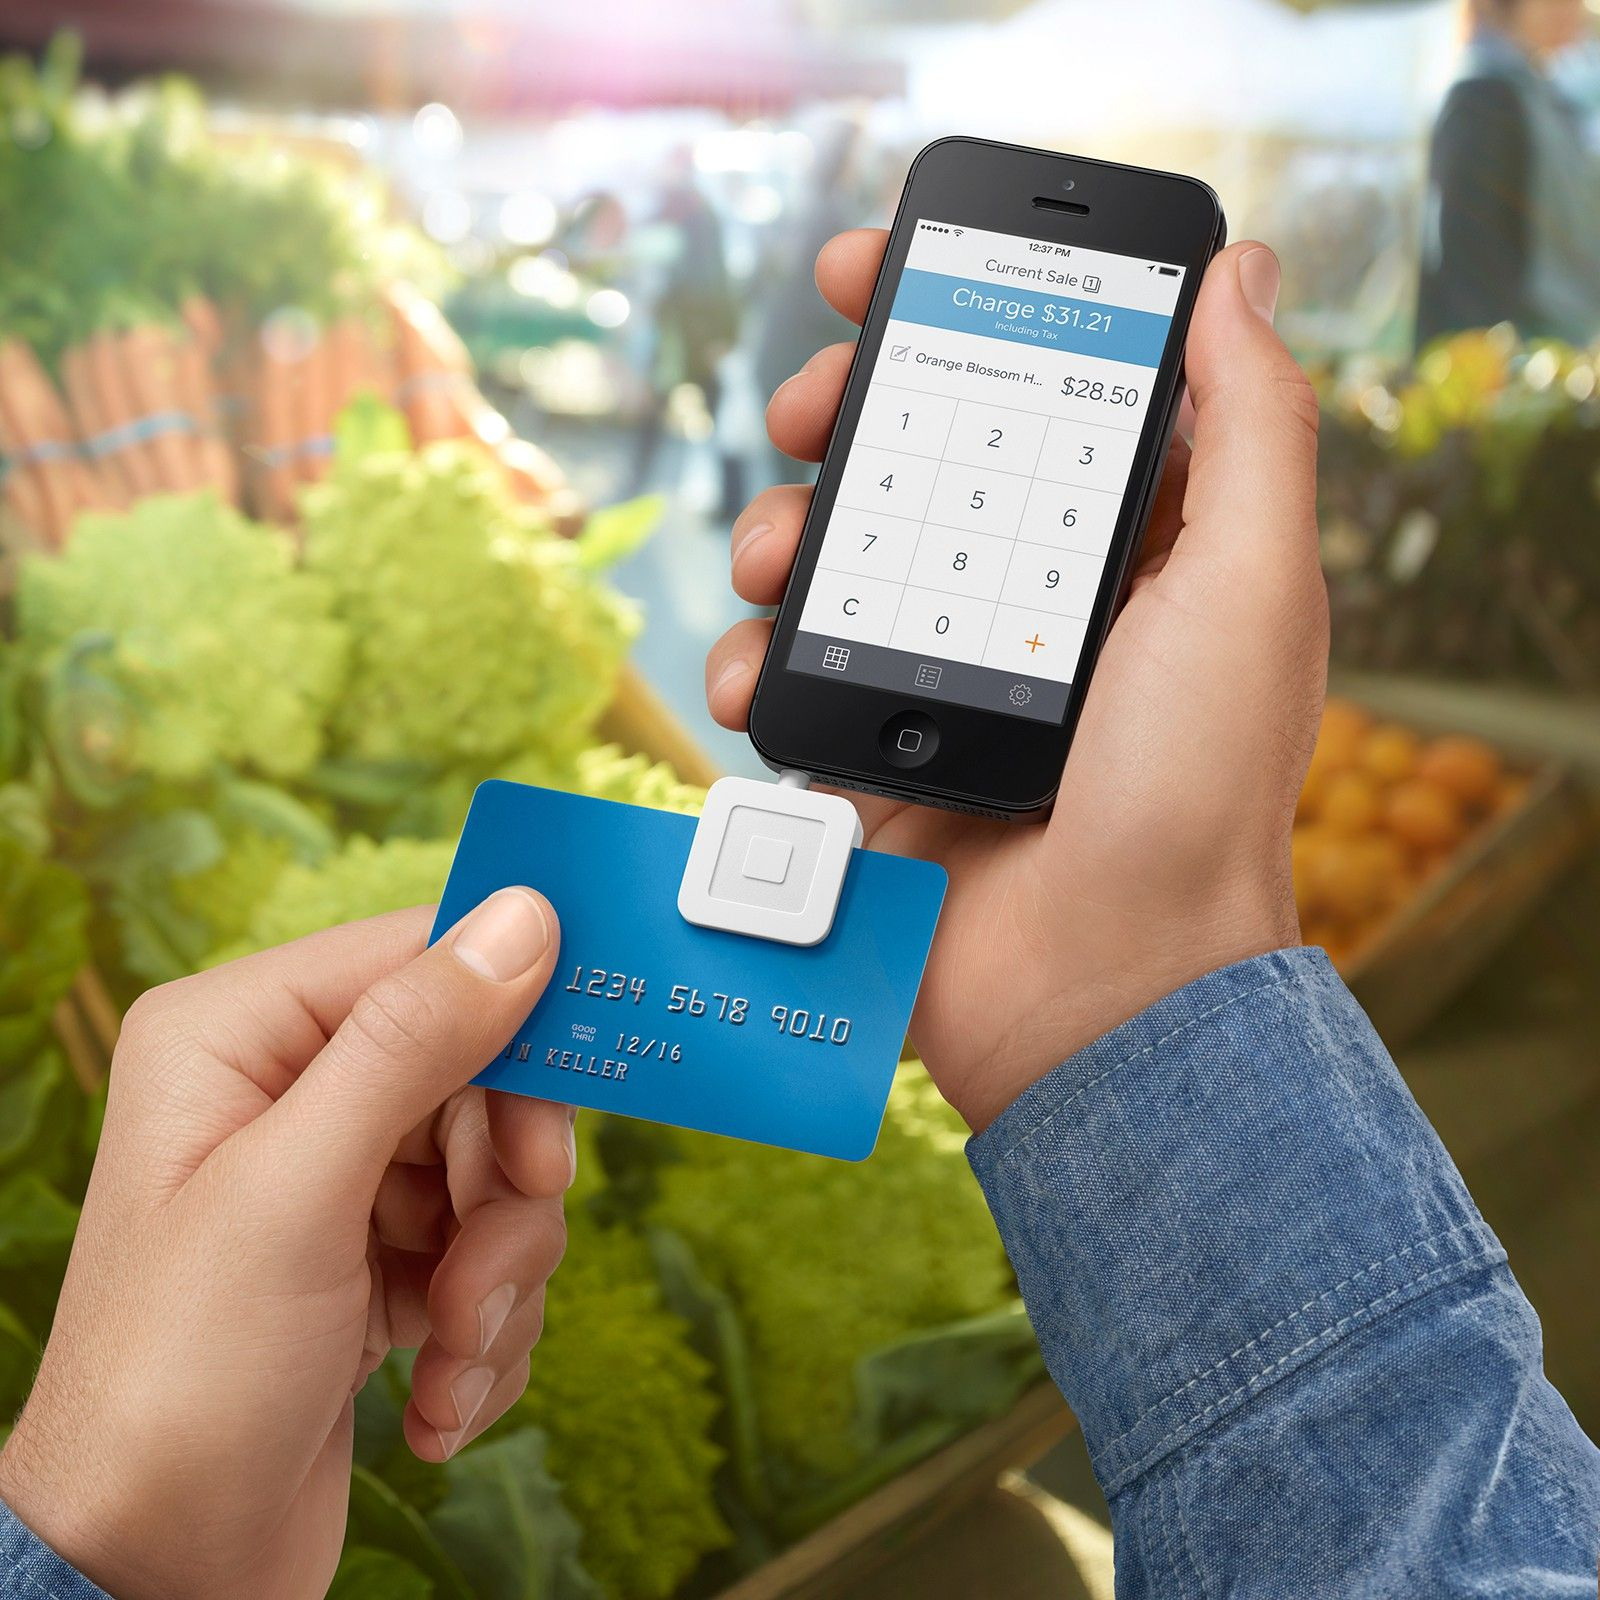 Top 7 Square Alternatives Competitors Alternative To Square Mobile Credit Card Credit Card Machine Credit Card Readers